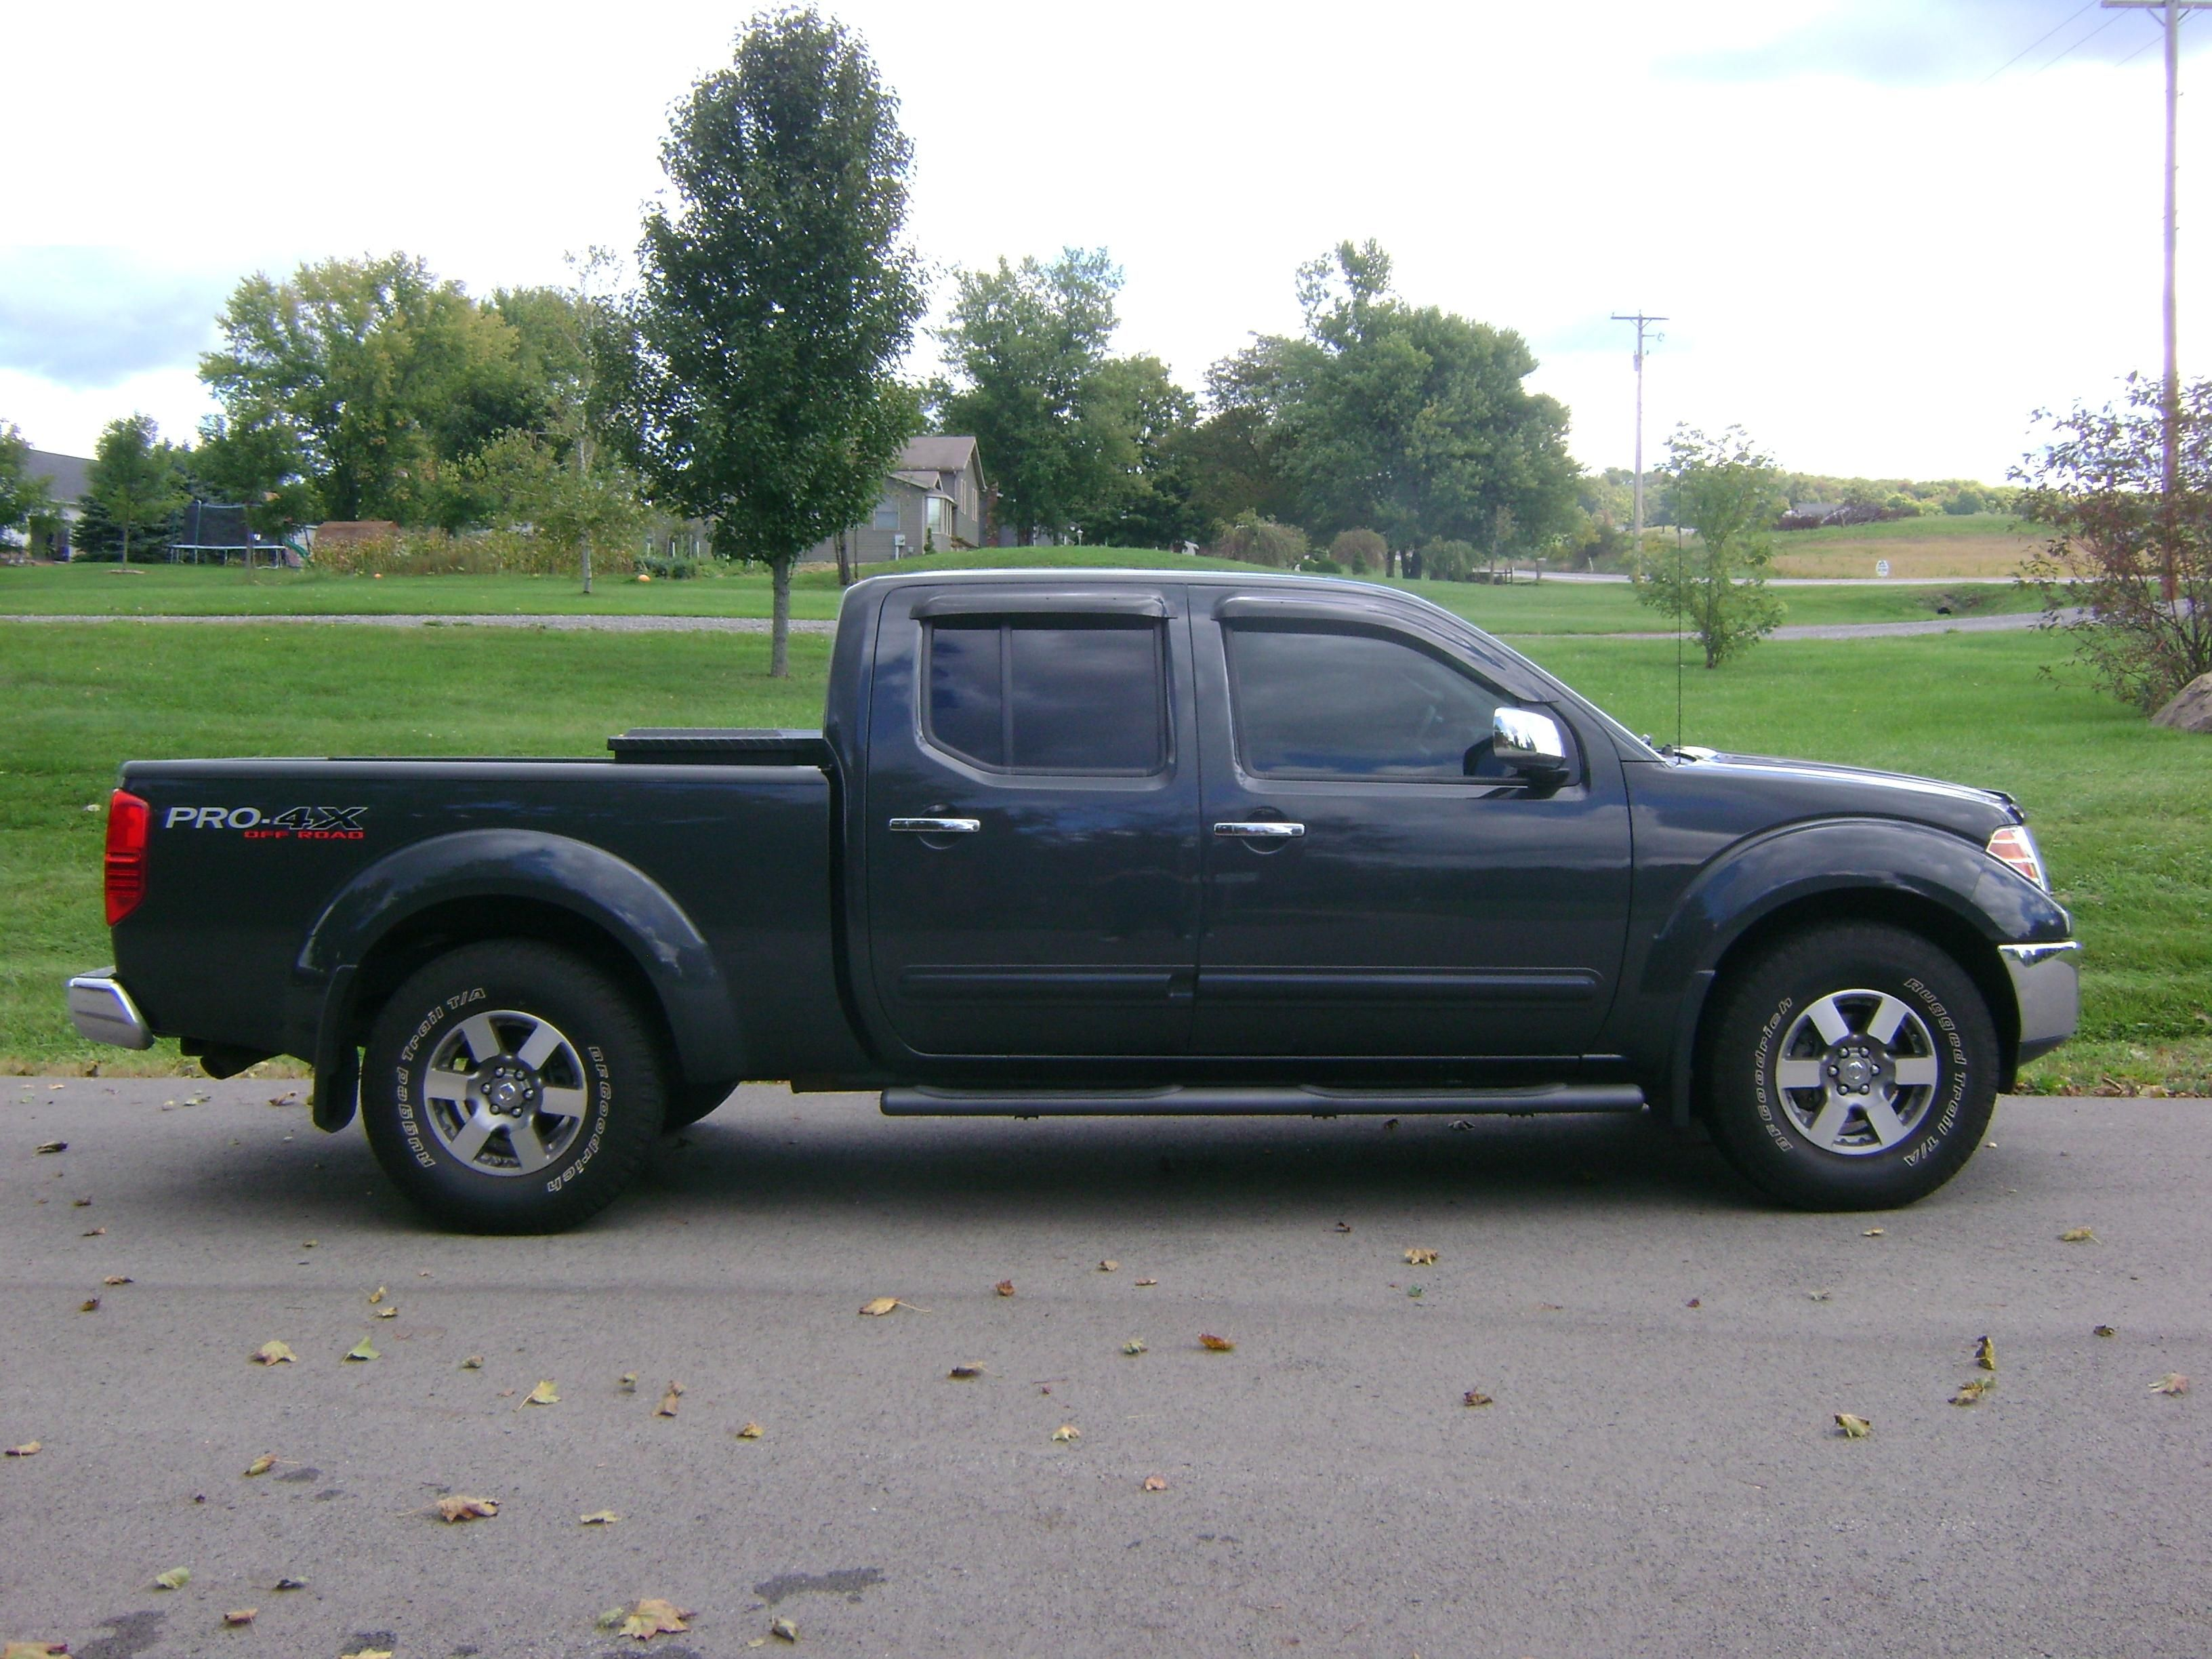 Perfect 2011 Nissan Frontier Crew Cab Long Bed 4x4. I Turned It Somewhat Into A  Pro 4x Edition Since Nissan Does Not Make A Crew Cab Long Bed PRO 4X